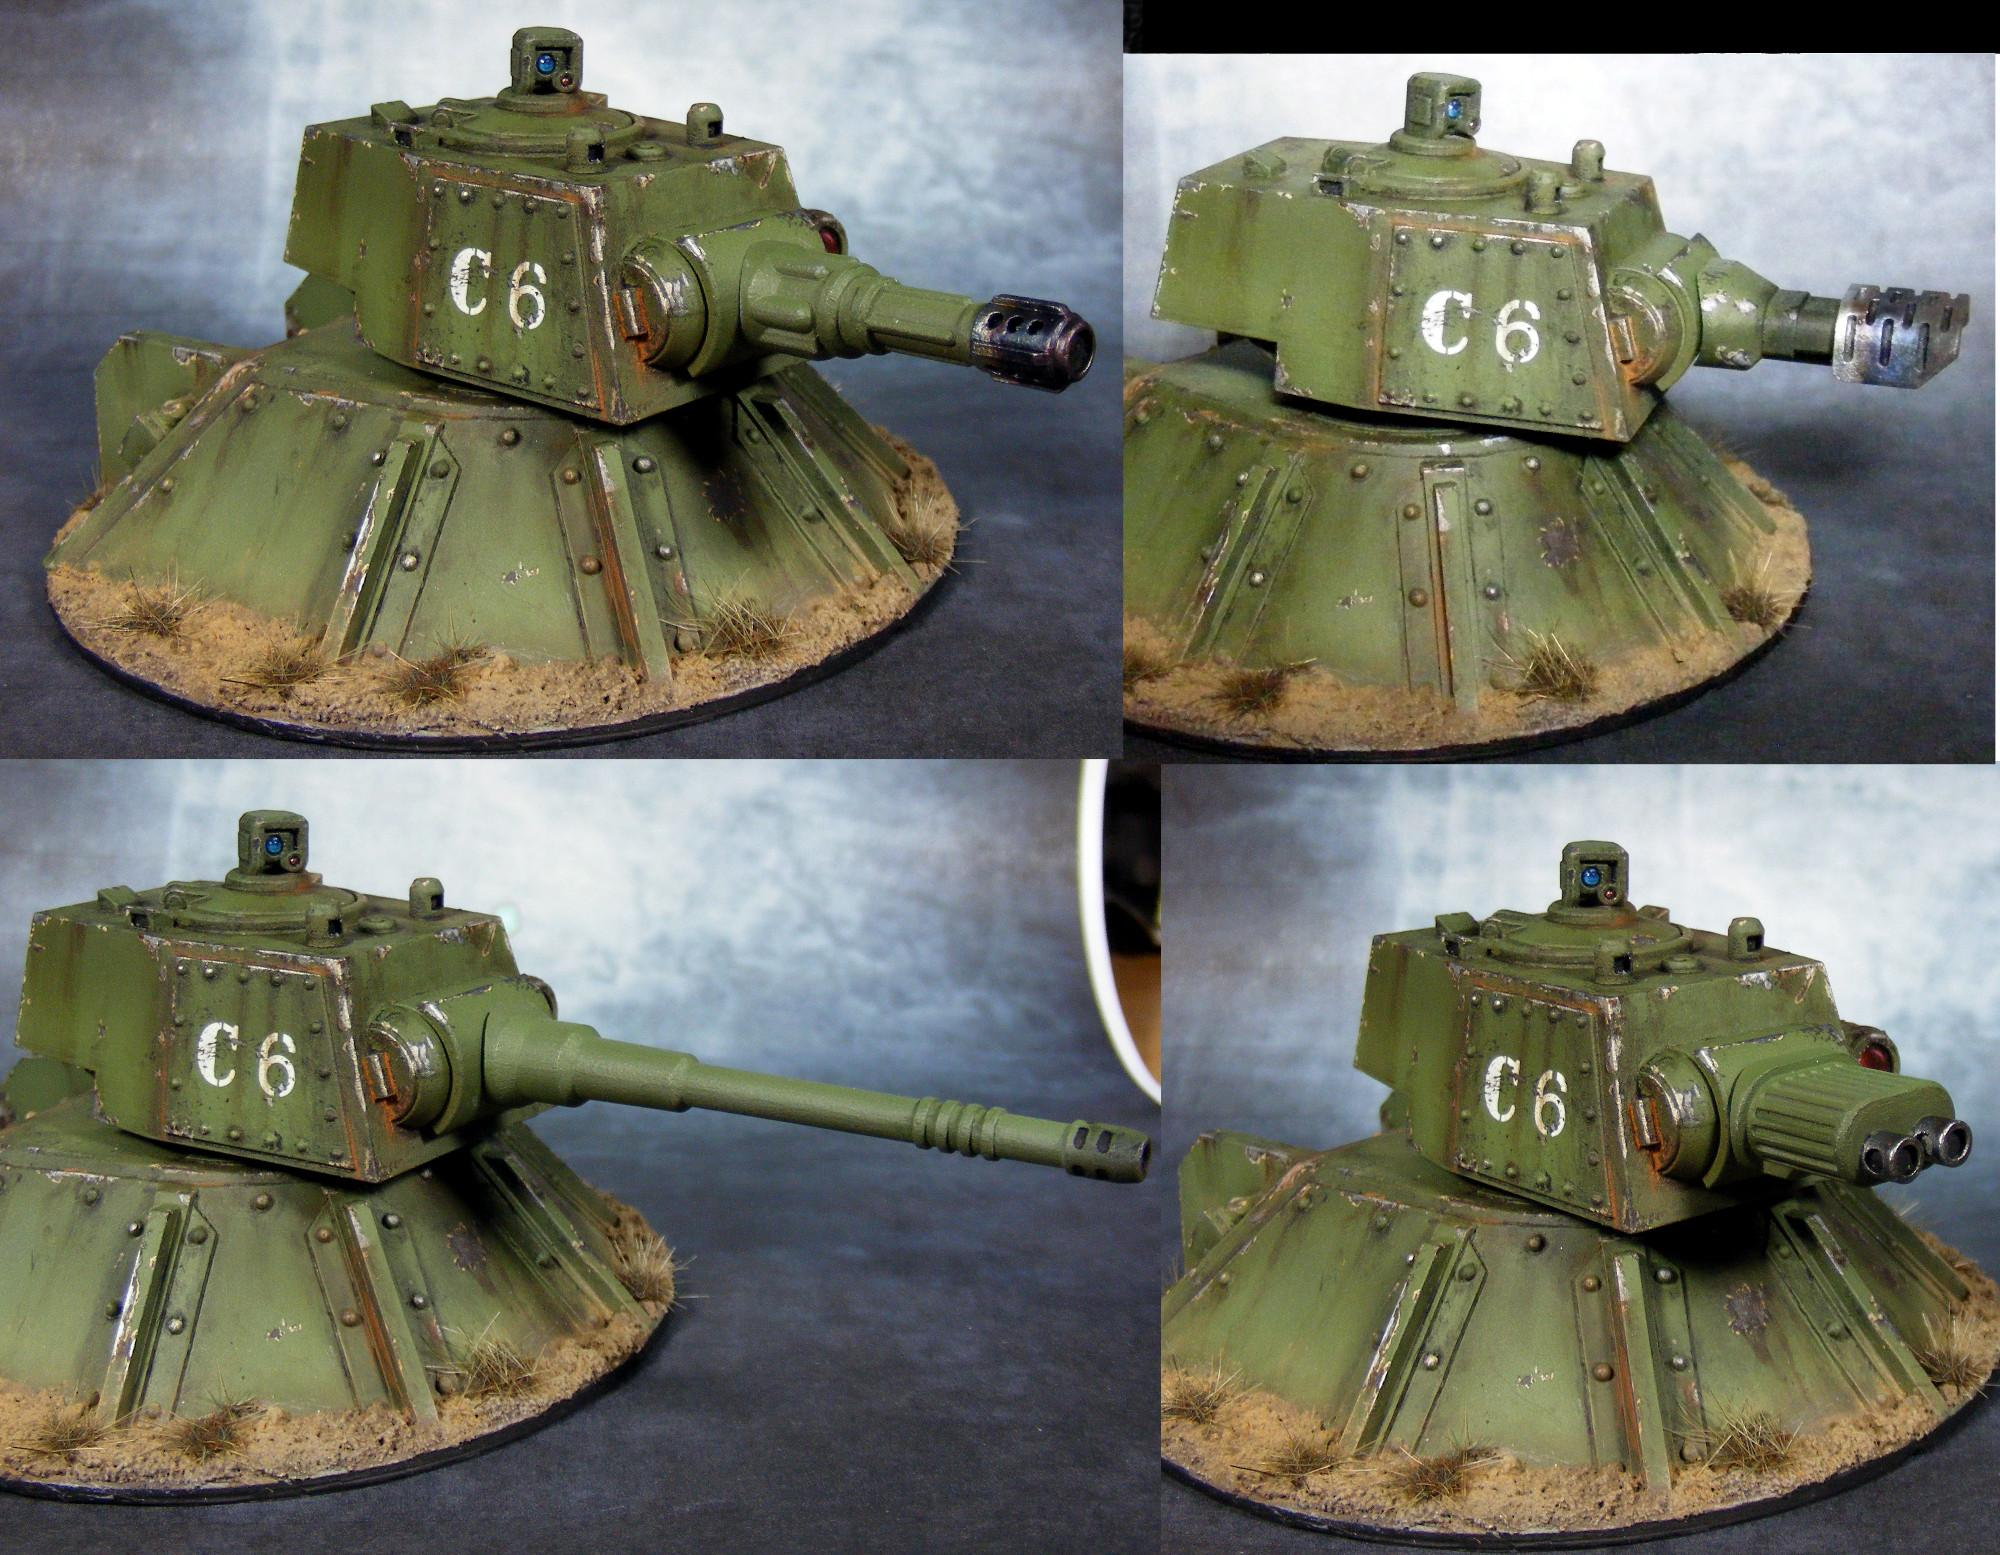 Artillery, Emplacement, Genswick, Gun Turret, Imperial Guard, Resin, Scratch Build, Turret, Vengence Weapons Battery, Warhammer 40,000